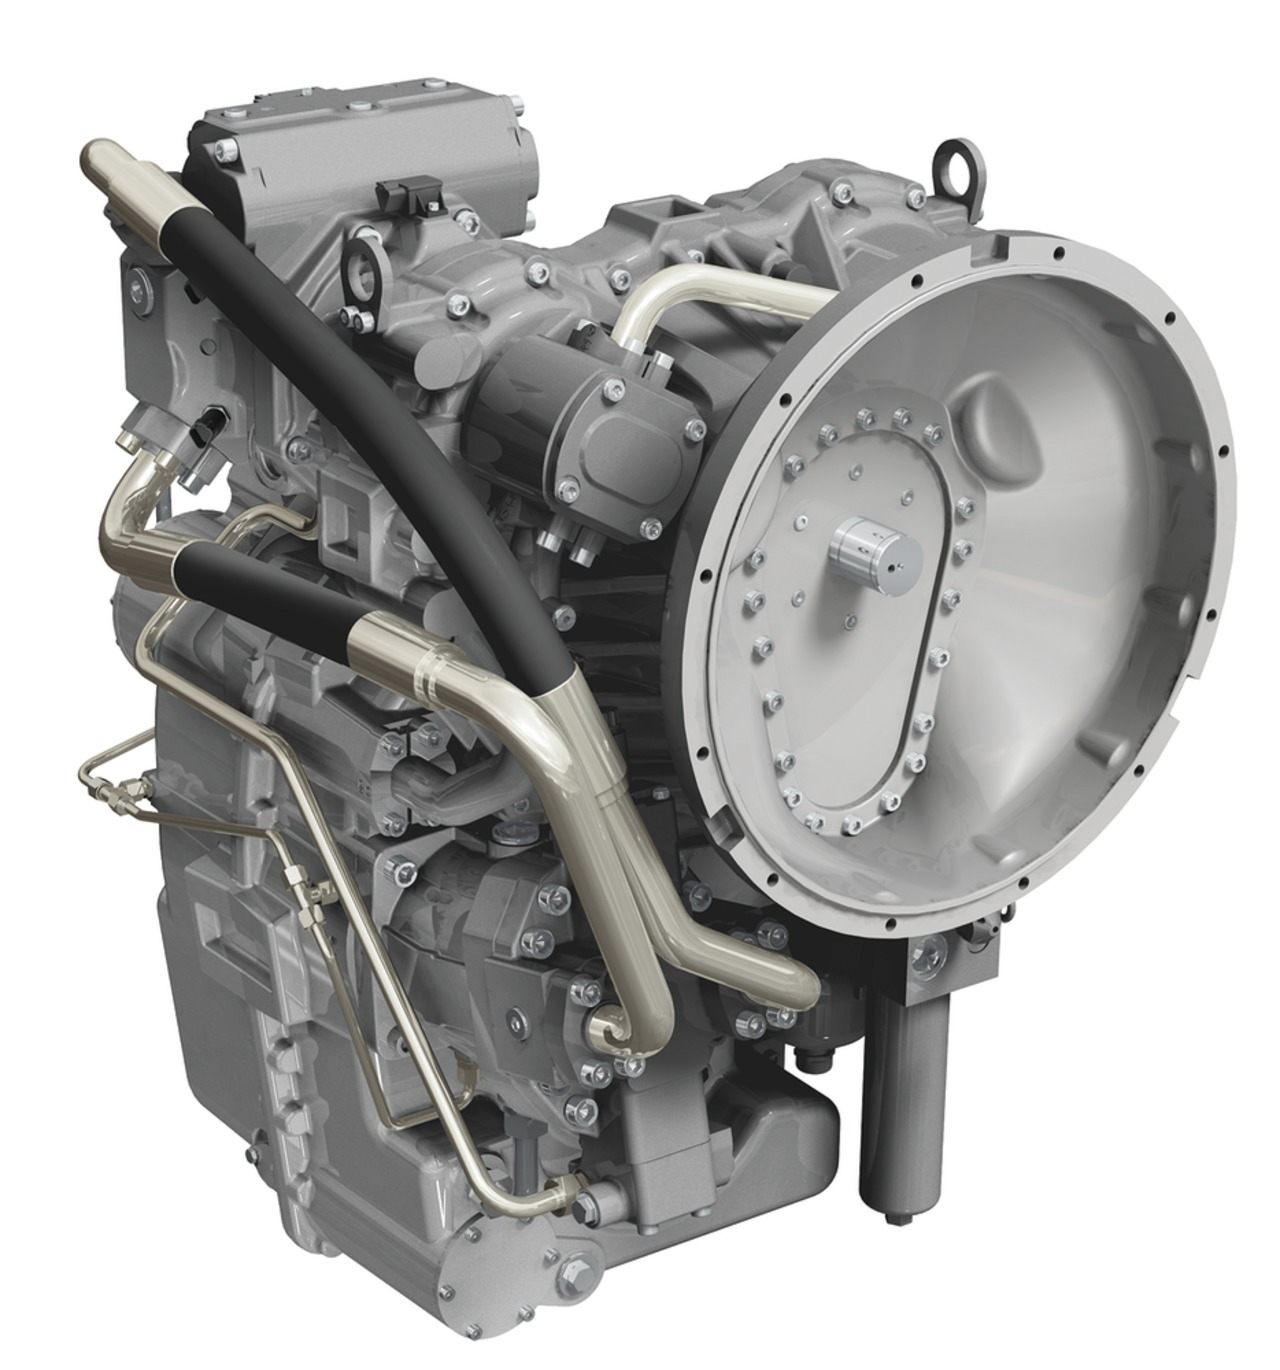 Dana Rexroth Begins Testing of Modular R3 Hydromechanical Variable Transmission